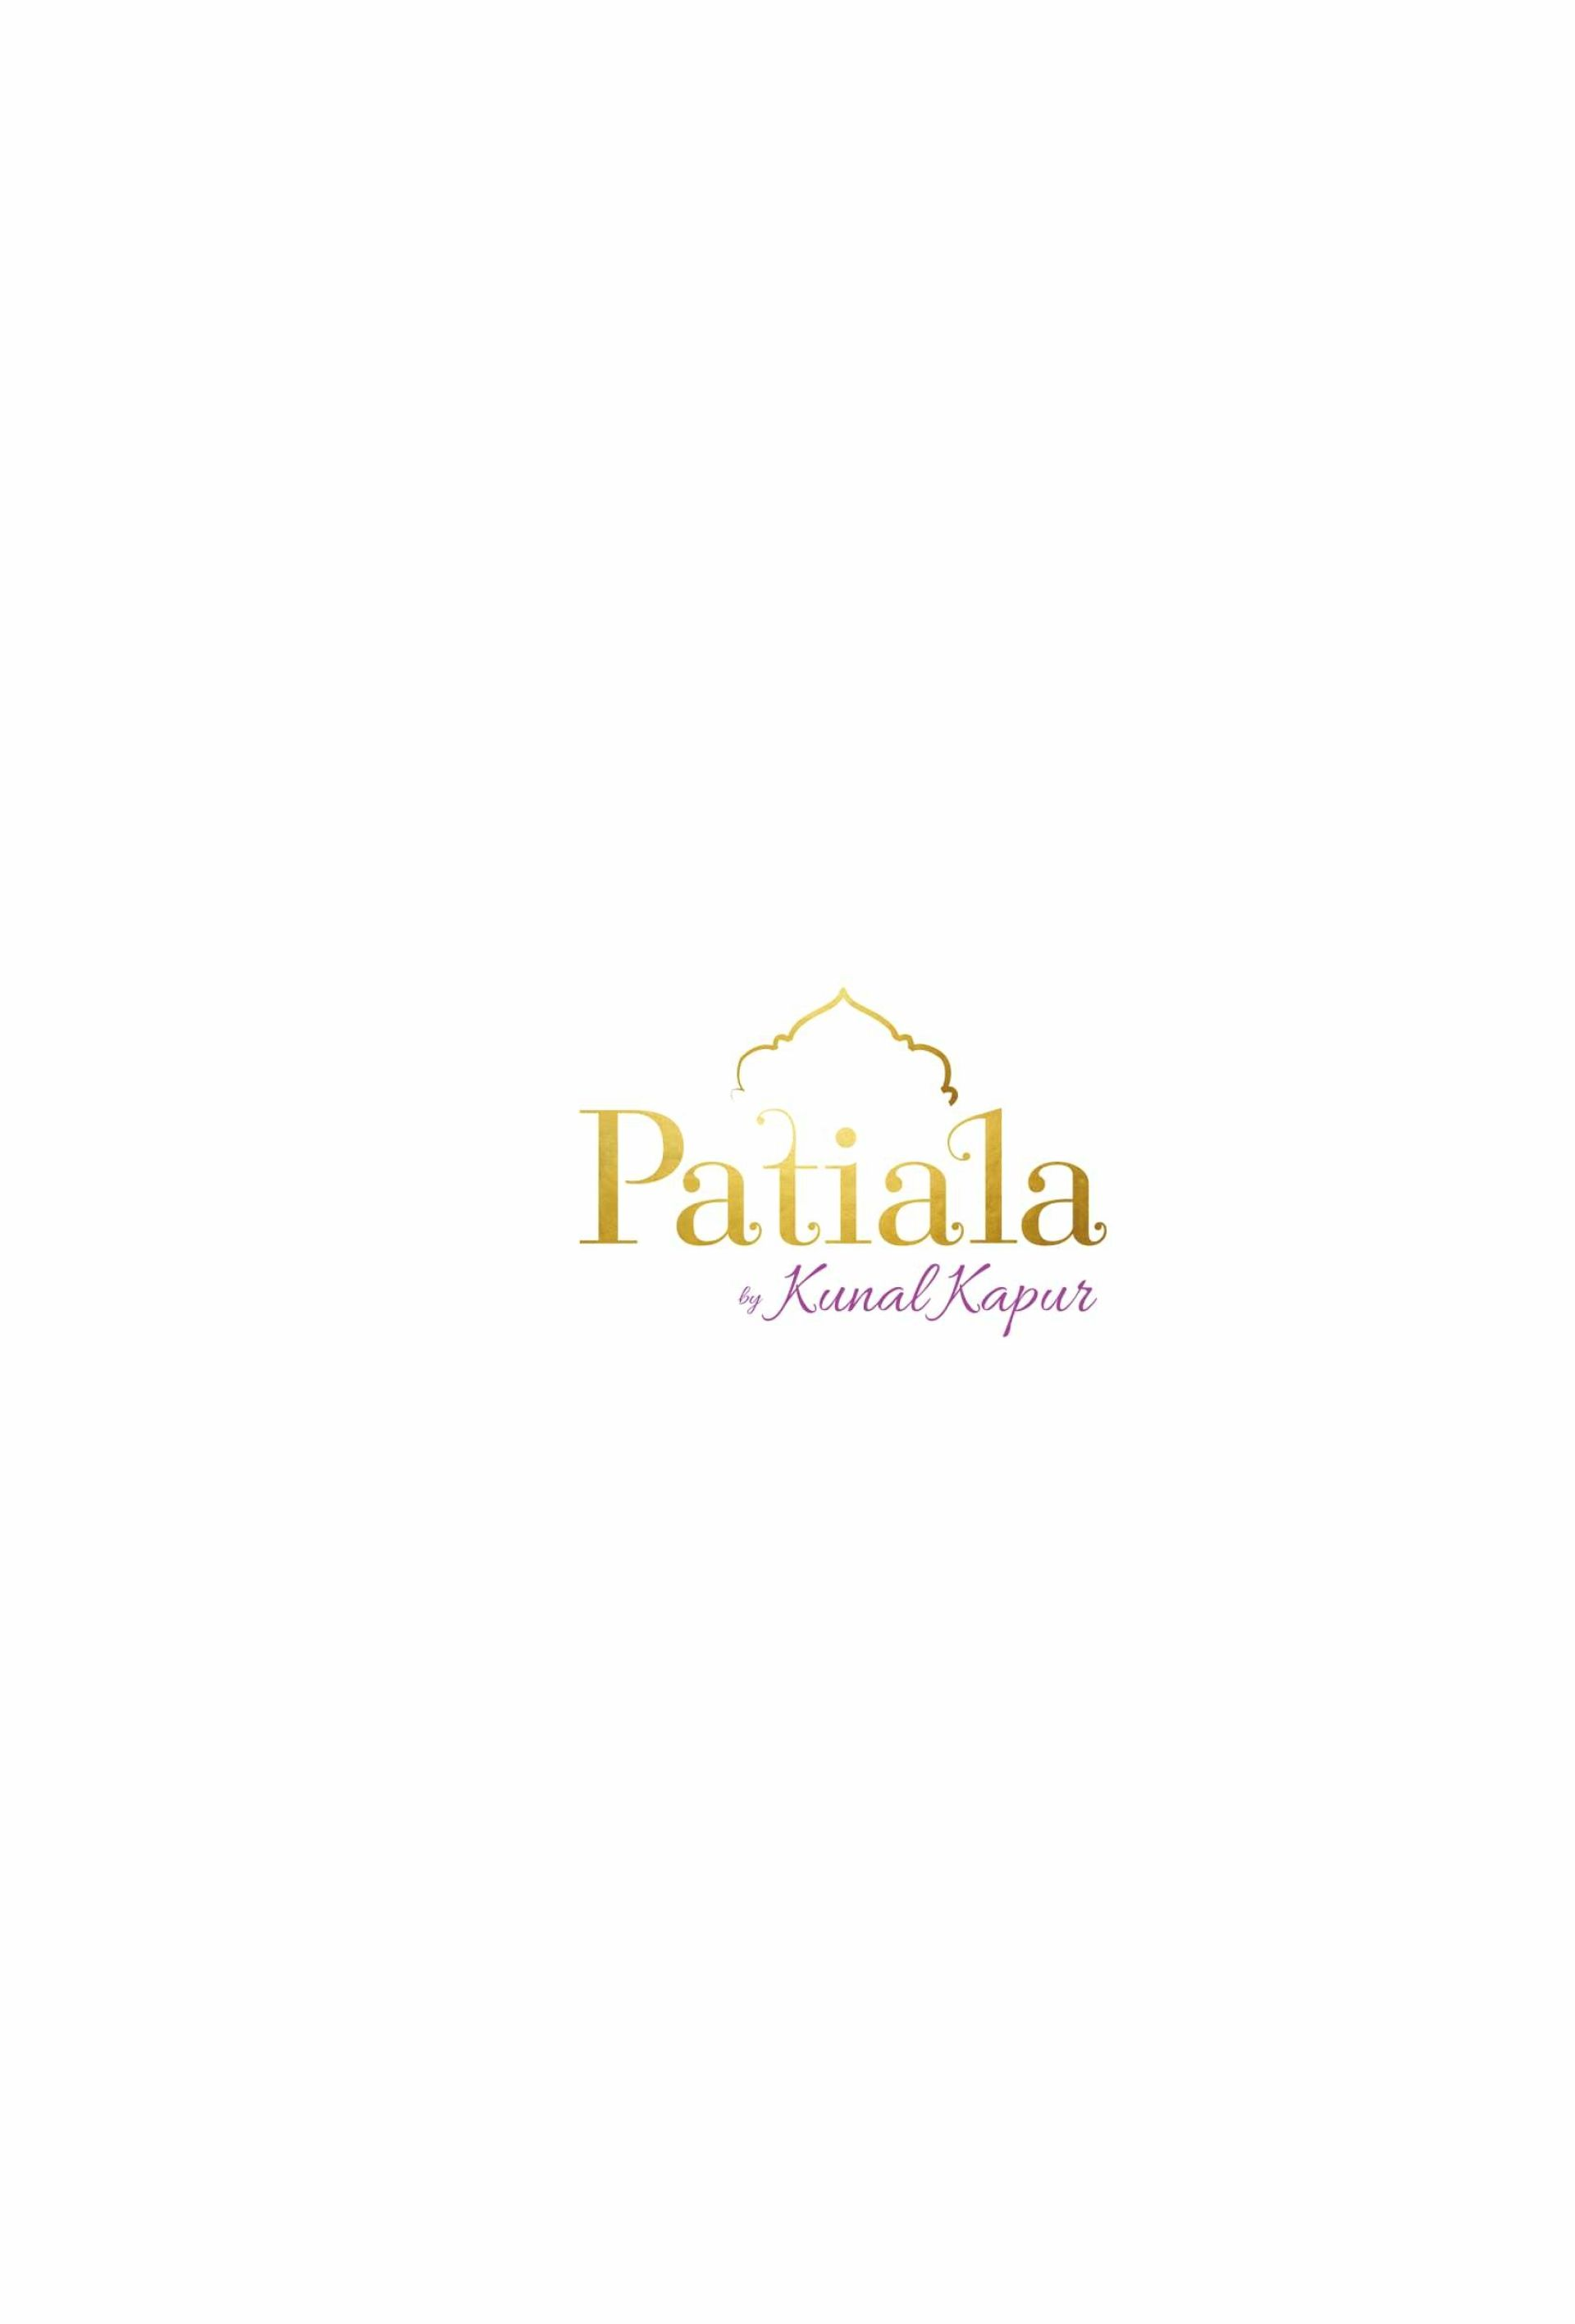 Menu of the Patiala By Kunal Kapur